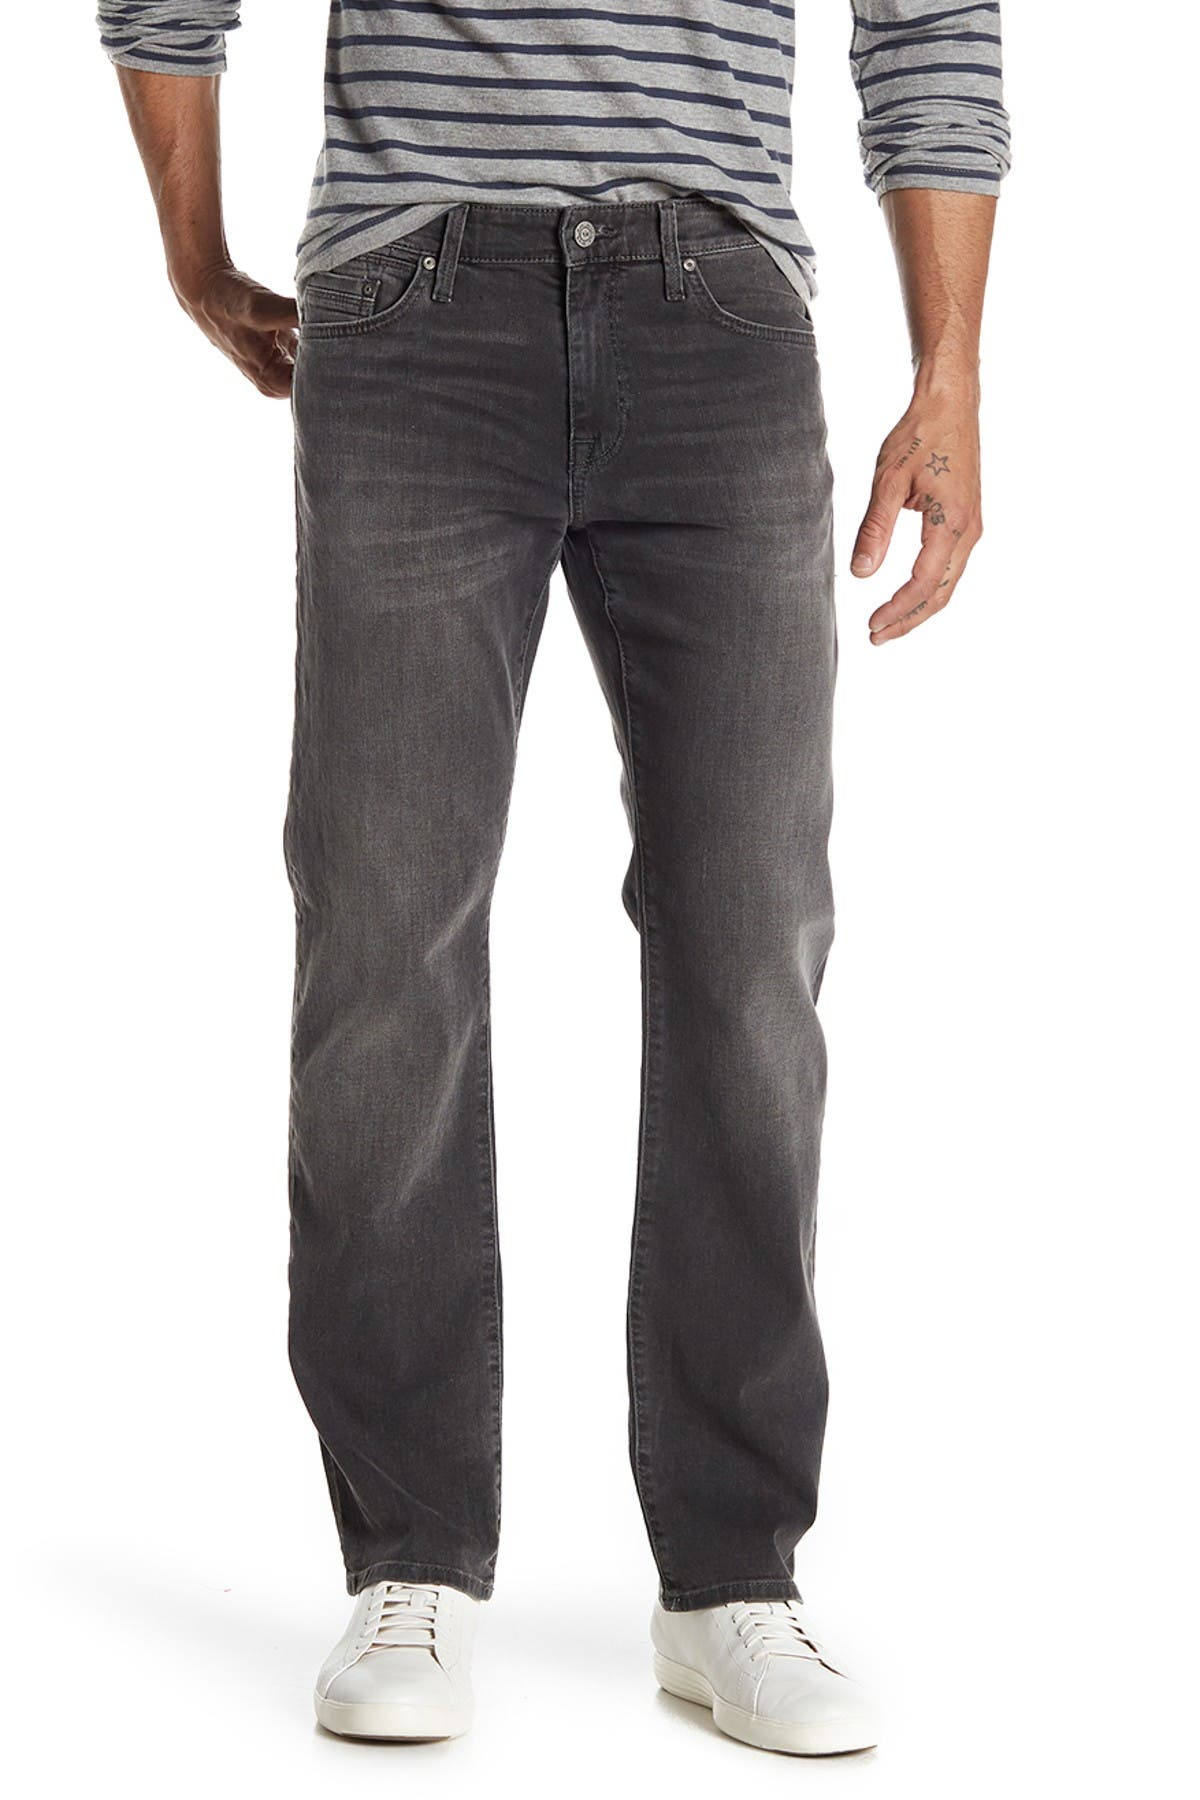 "Image of Mavi Zach Faded Straight Leg Jeans - 30-34"" Inseam"